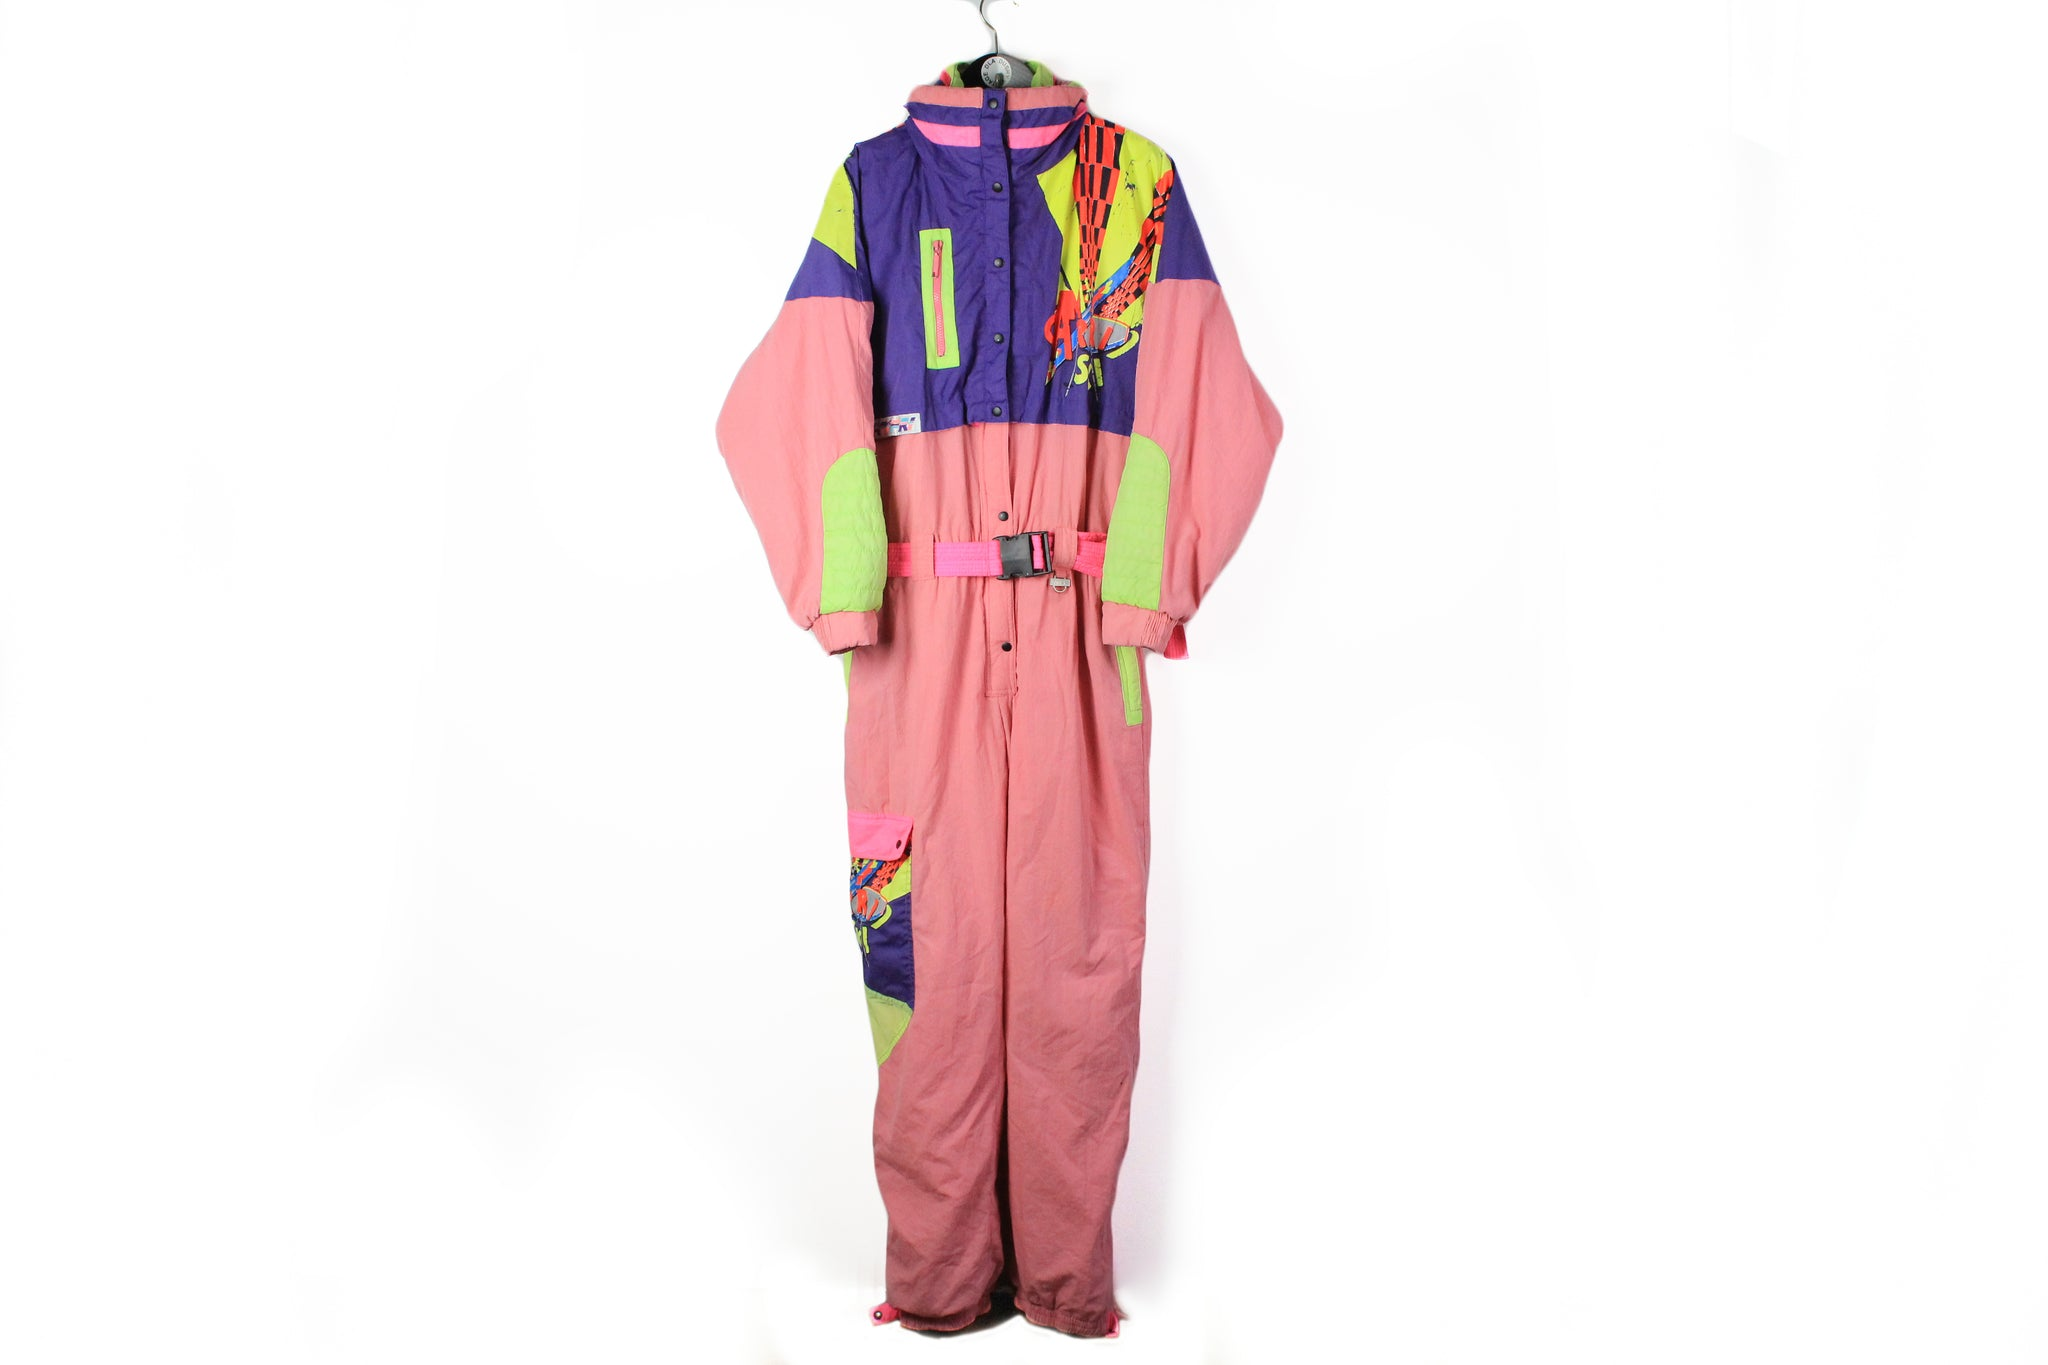 Vintage Campri Ski Suit Small / Medium pink purple 90s mountain winter jumpsuit